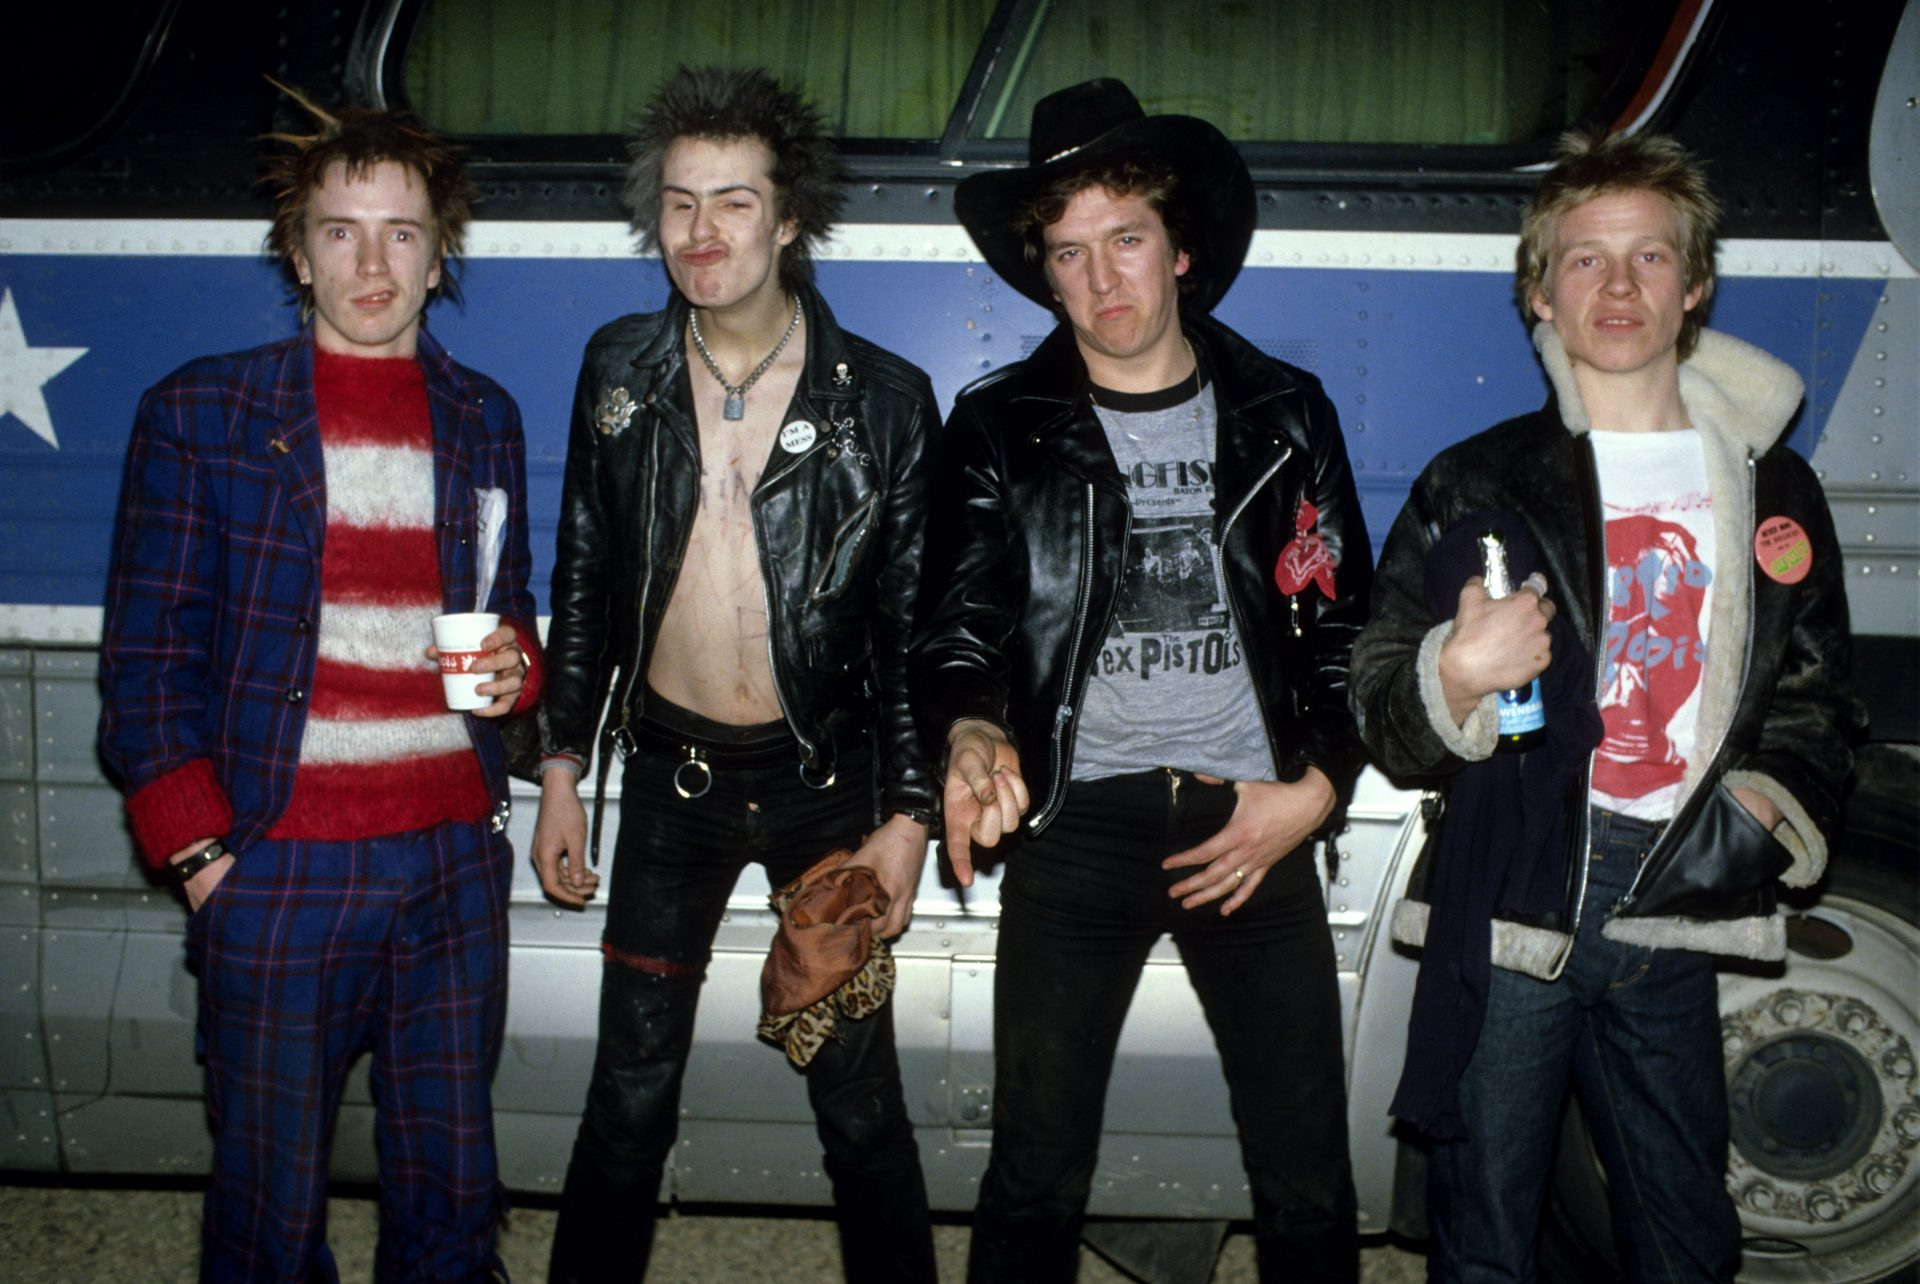 Future legal foes John Lydon/Johnny Rotten, Steve Jones and Paul Cook with bassist Sid Vicious (second left) in America on what proved to be their final tour, January 1978. Credit: Richard E Aaron/ Redferns